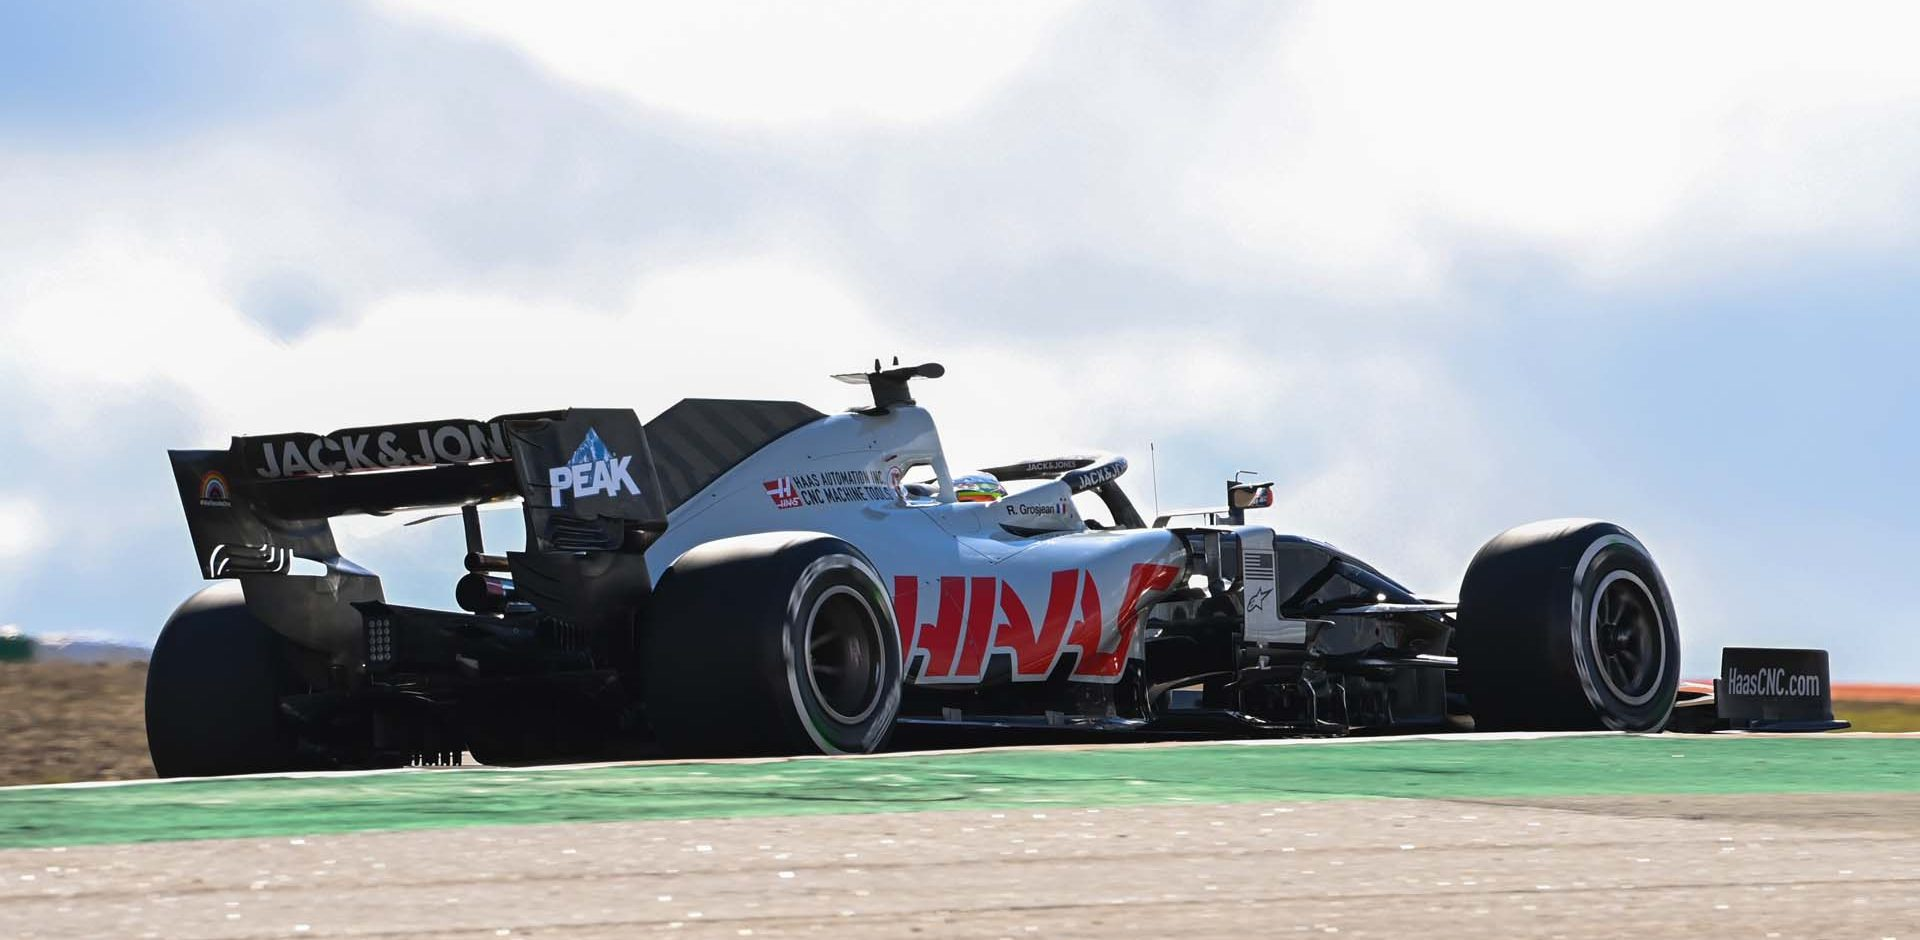 ALGARVE INTERNATIONAL CIRCUIT, PORTUGAL - OCTOBER 23: Romain Grosjean, Haas VF-20 during the Portuguese GP at Algarve International Circuit on Friday October 23, 2020, Portugal. (Photo by Mark Sutton / Sutton Images)